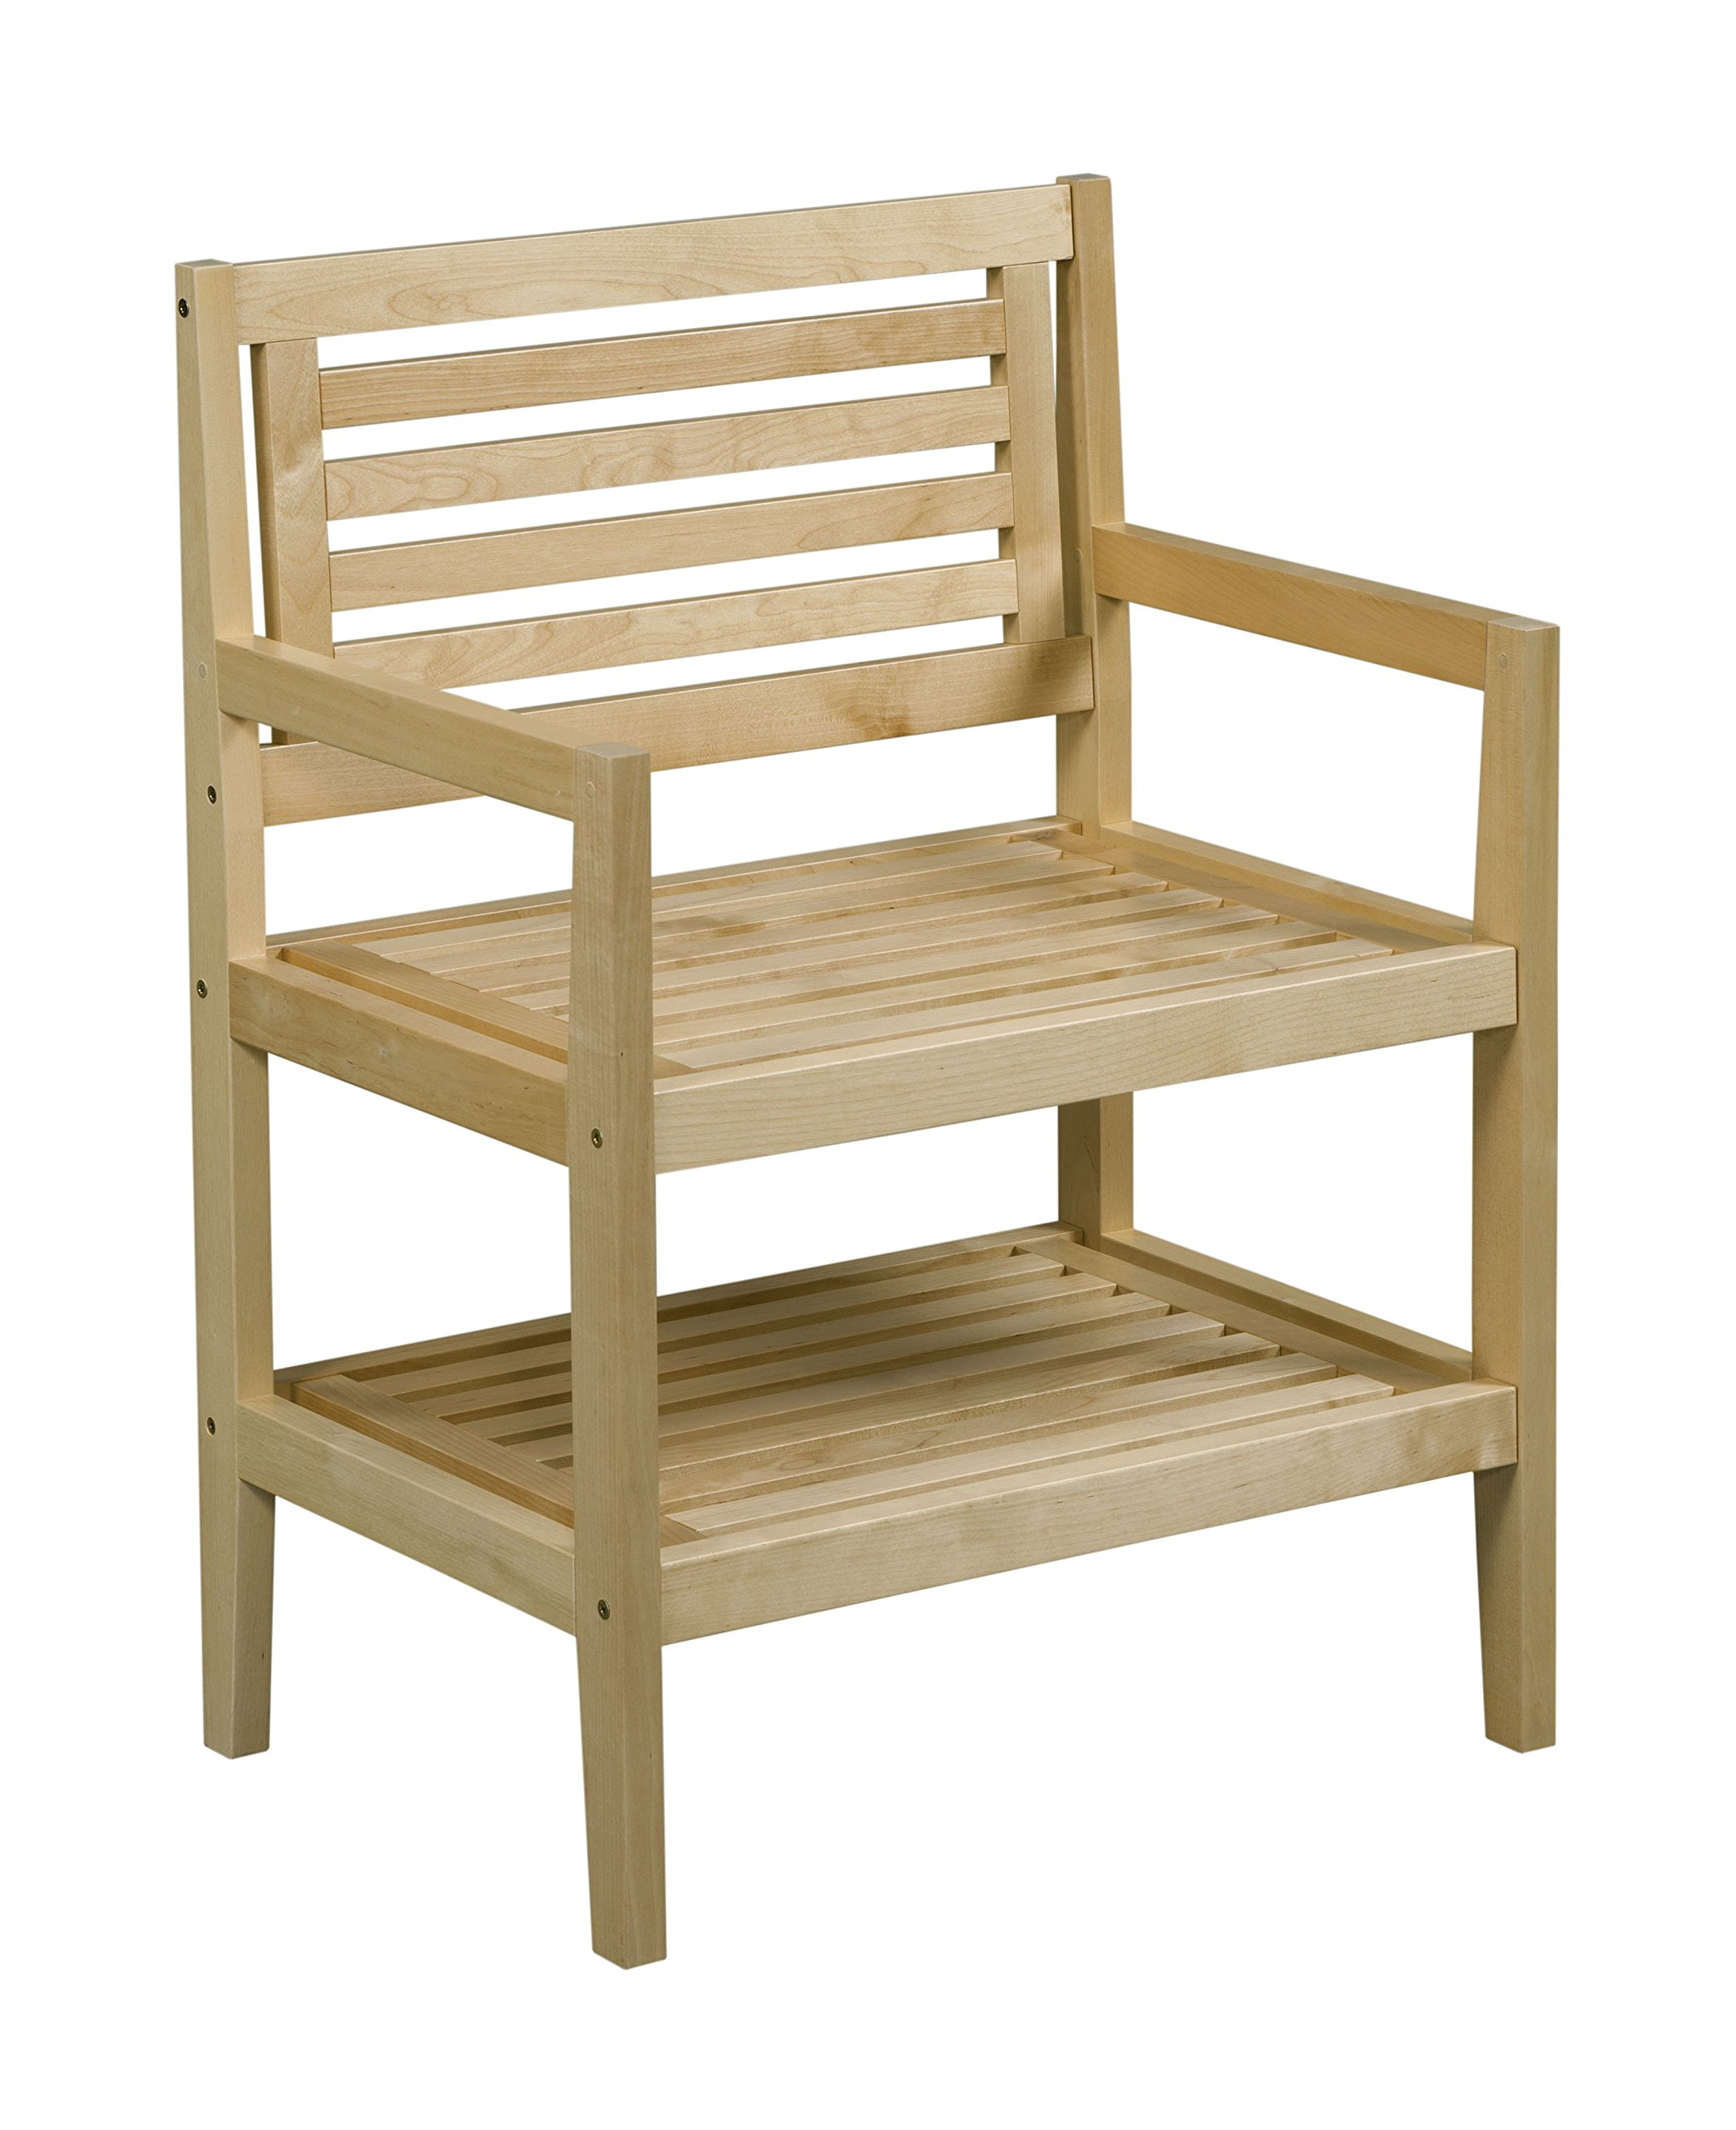 New Ridge Home Goods Dunnsville Solid Birch Wood Accent Chair, Blonde